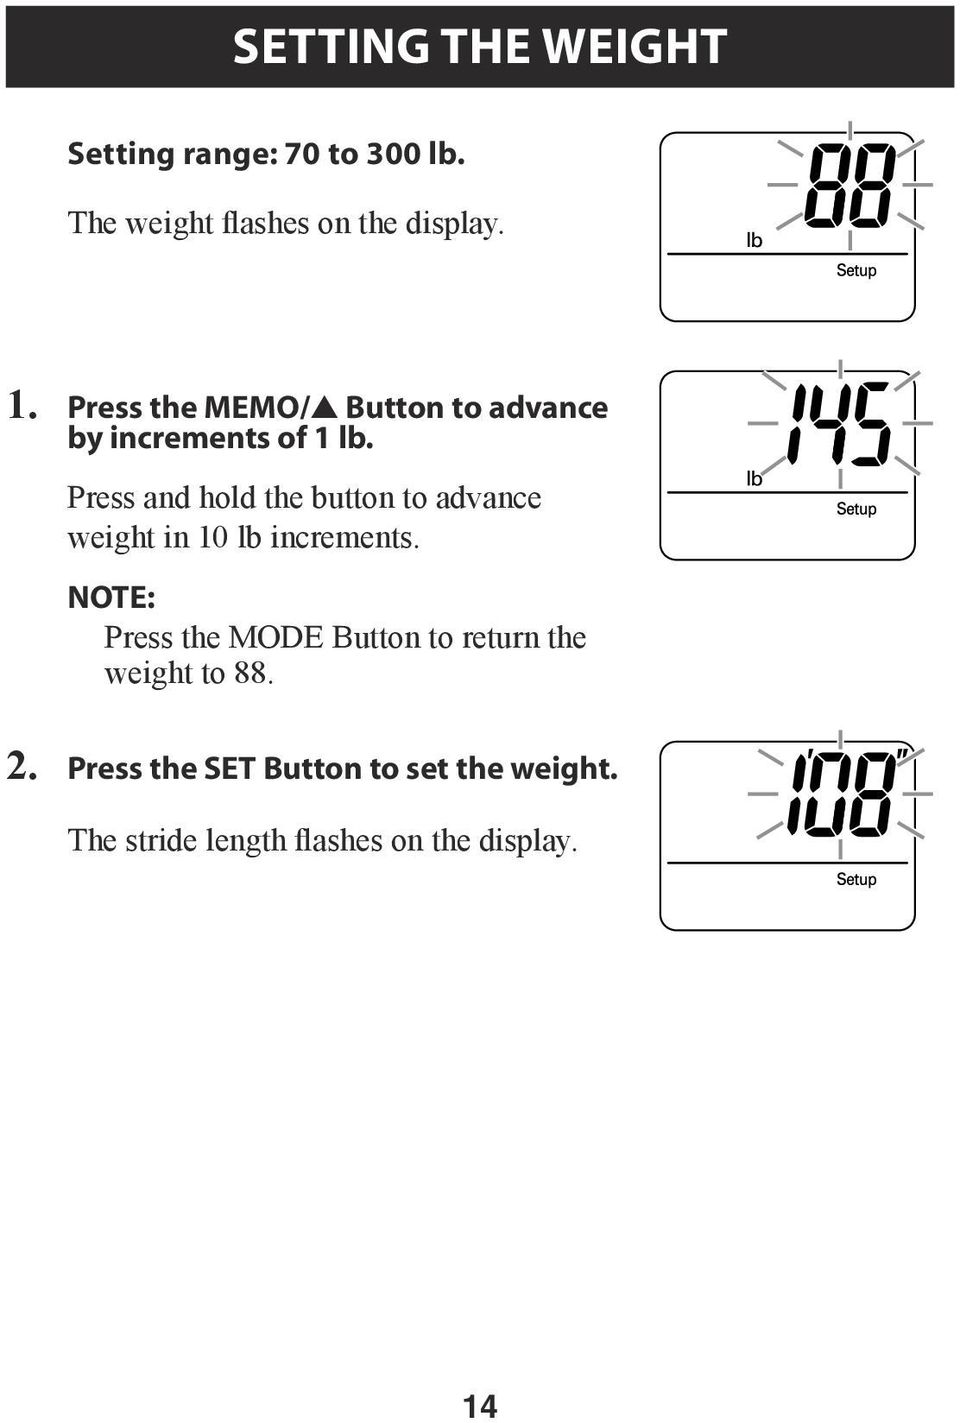 Press and hold the button to advance weight in 10 lb increments.